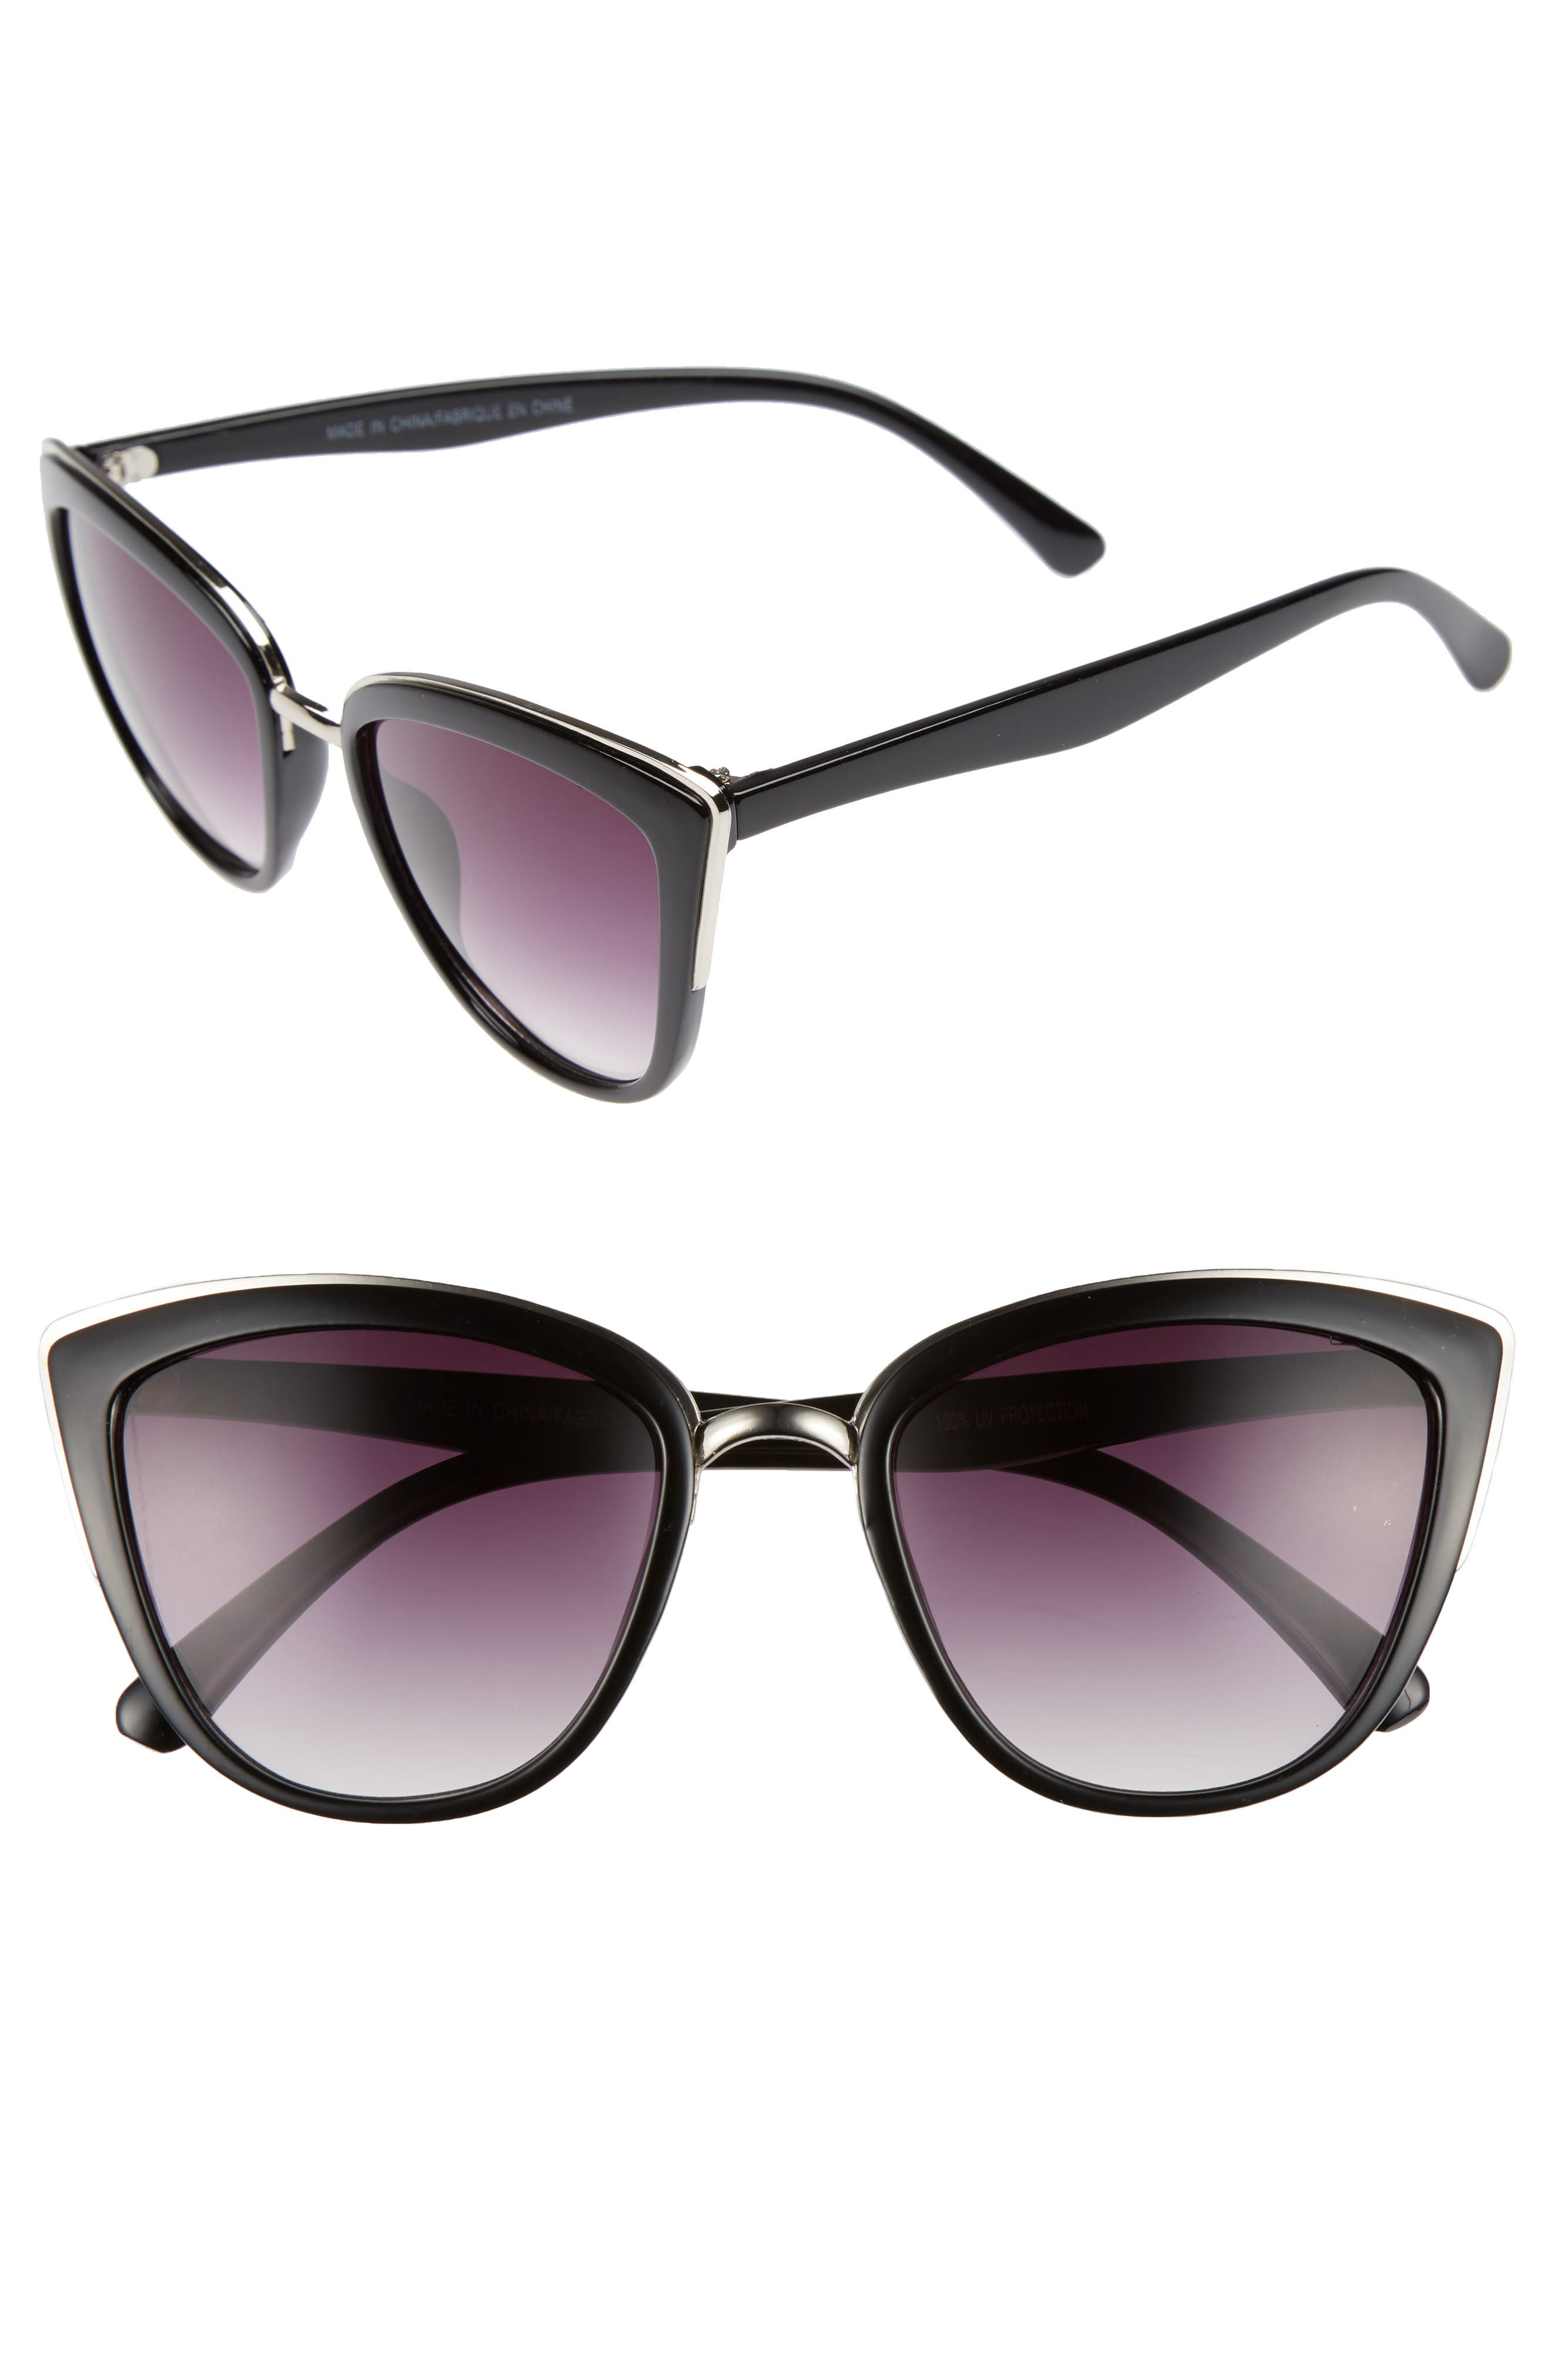 55mm Metal Rim Cat Eye Sunglasses,                         Main,                         color, Black